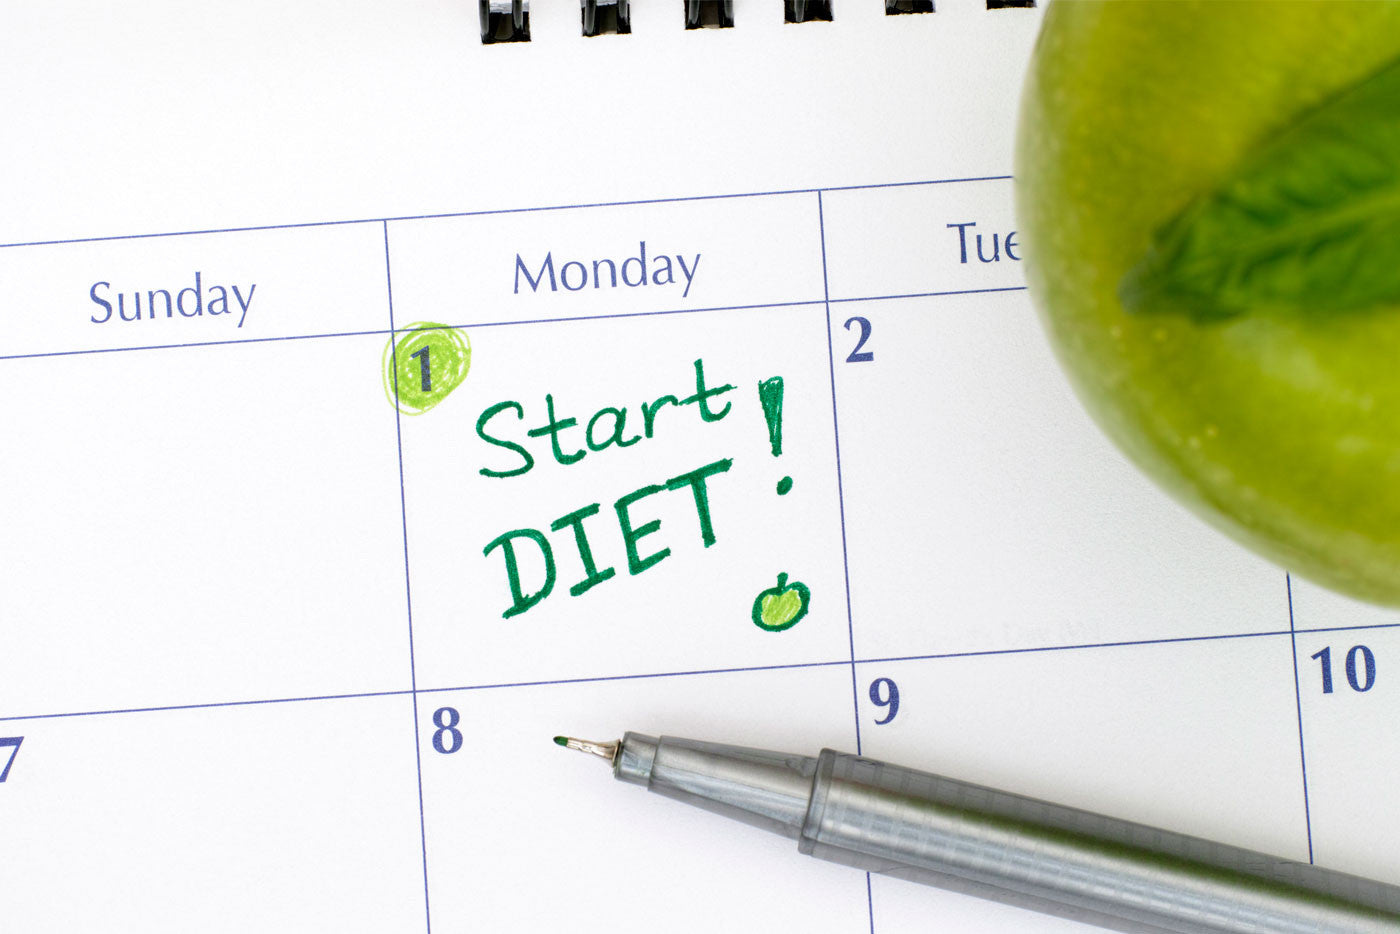 5:2 Diet what is it??